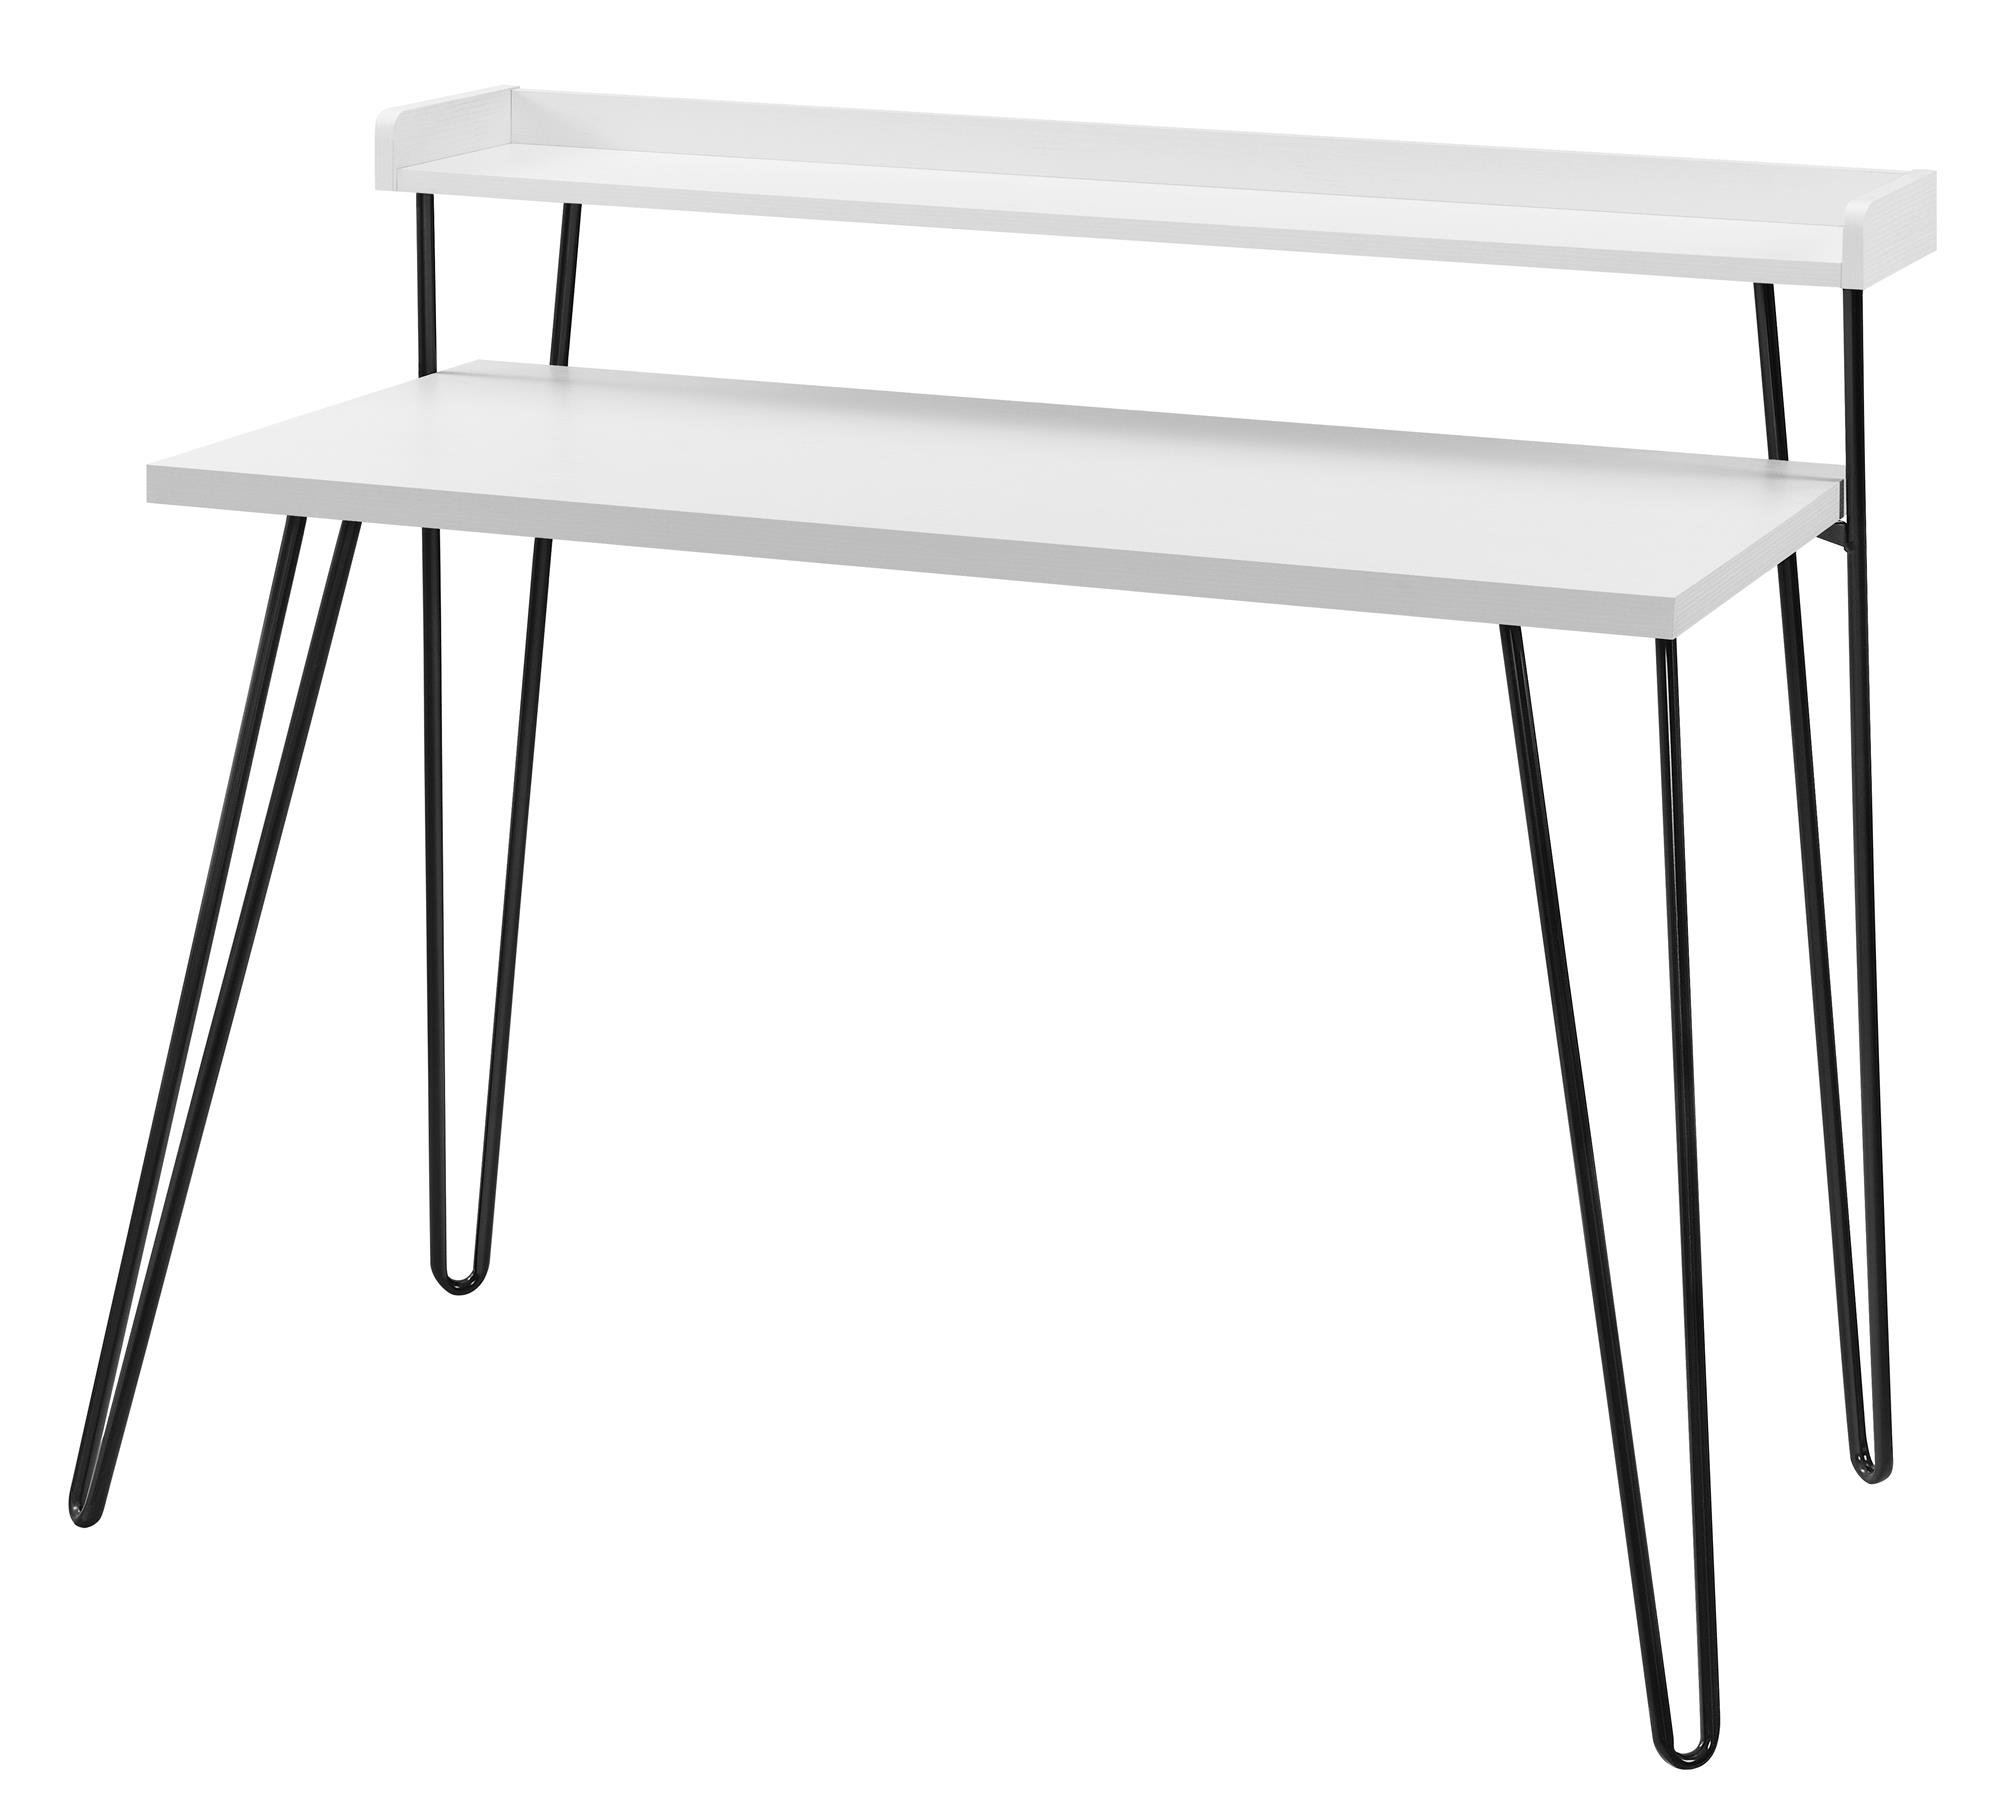 Ameriwood Home Haven Retro Desk with Riser, White by Ameriwood Home